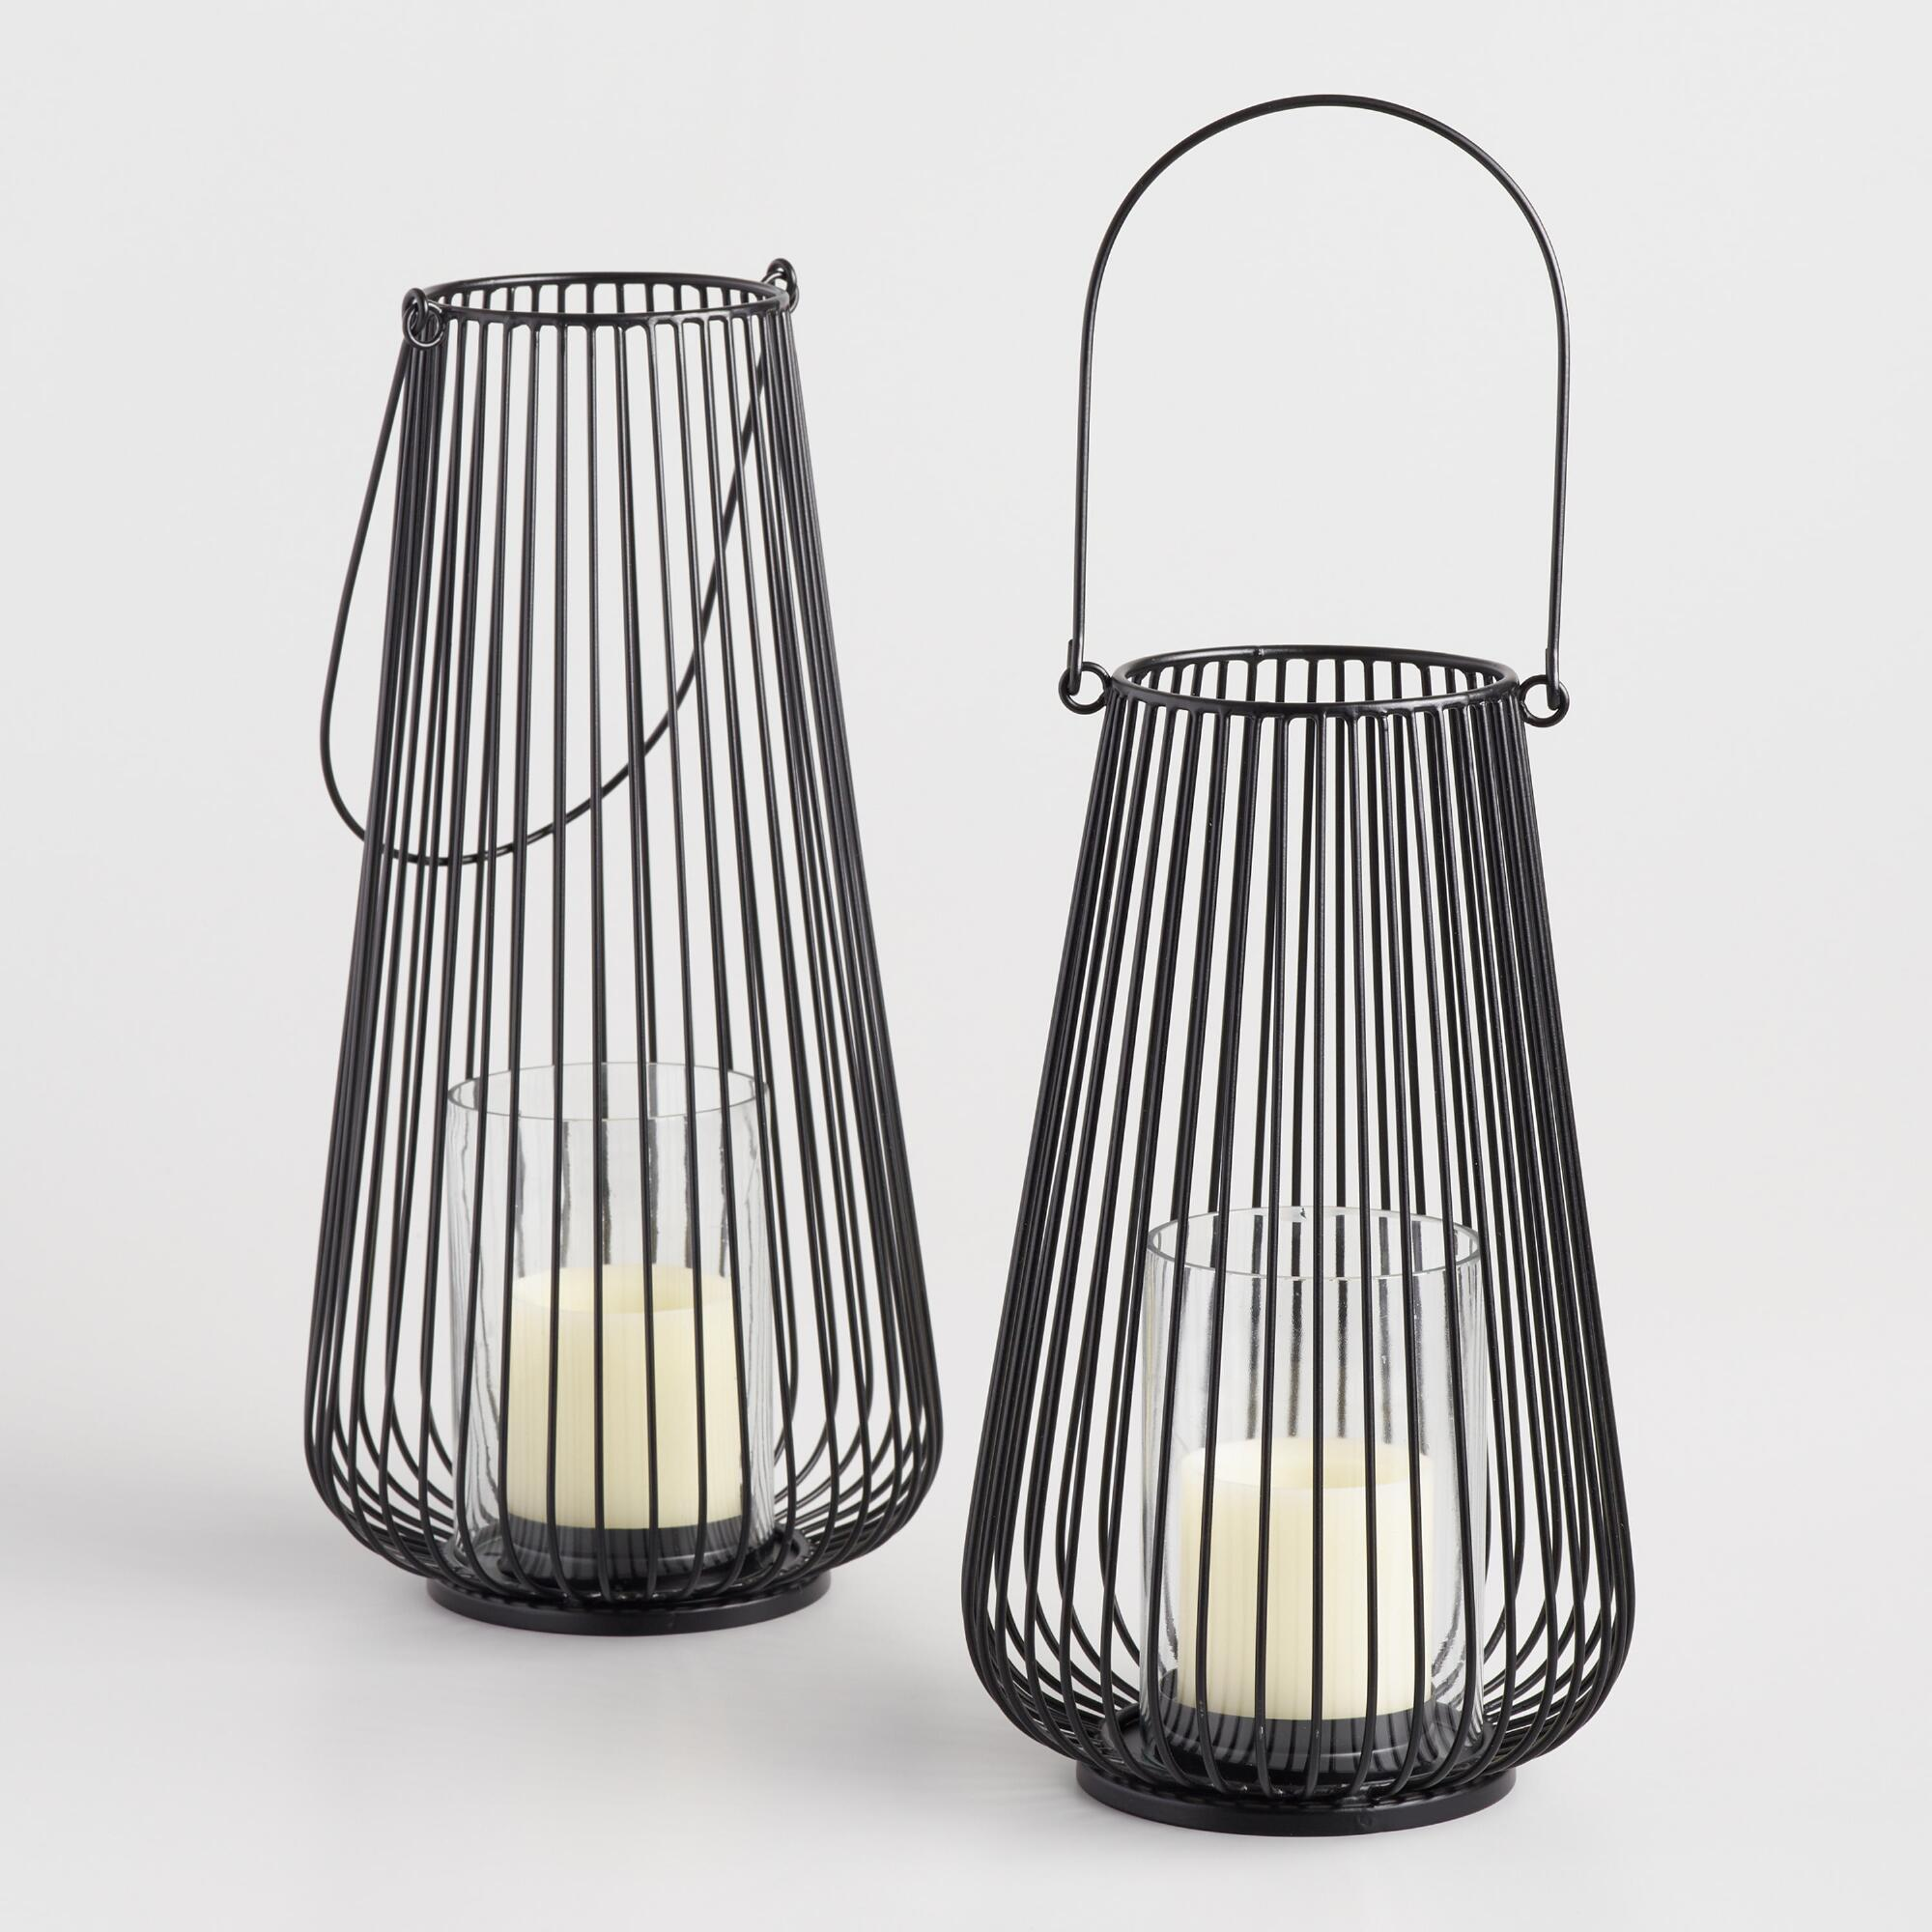 Black Metal Wire Lantern - Small by World Market Small